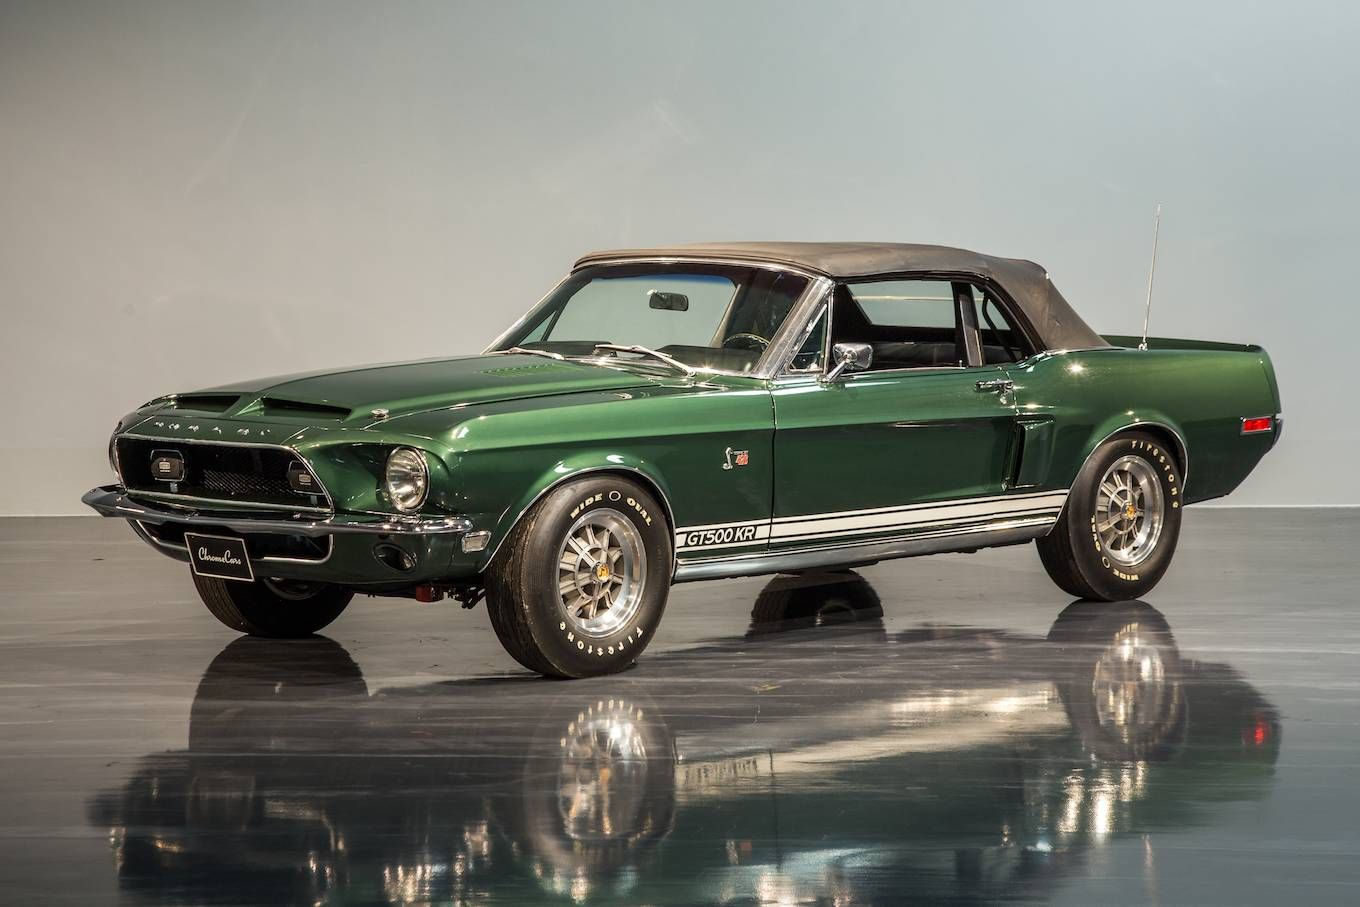 Ford Mustang Shelby Gt 500 Gebraucht Kaufen